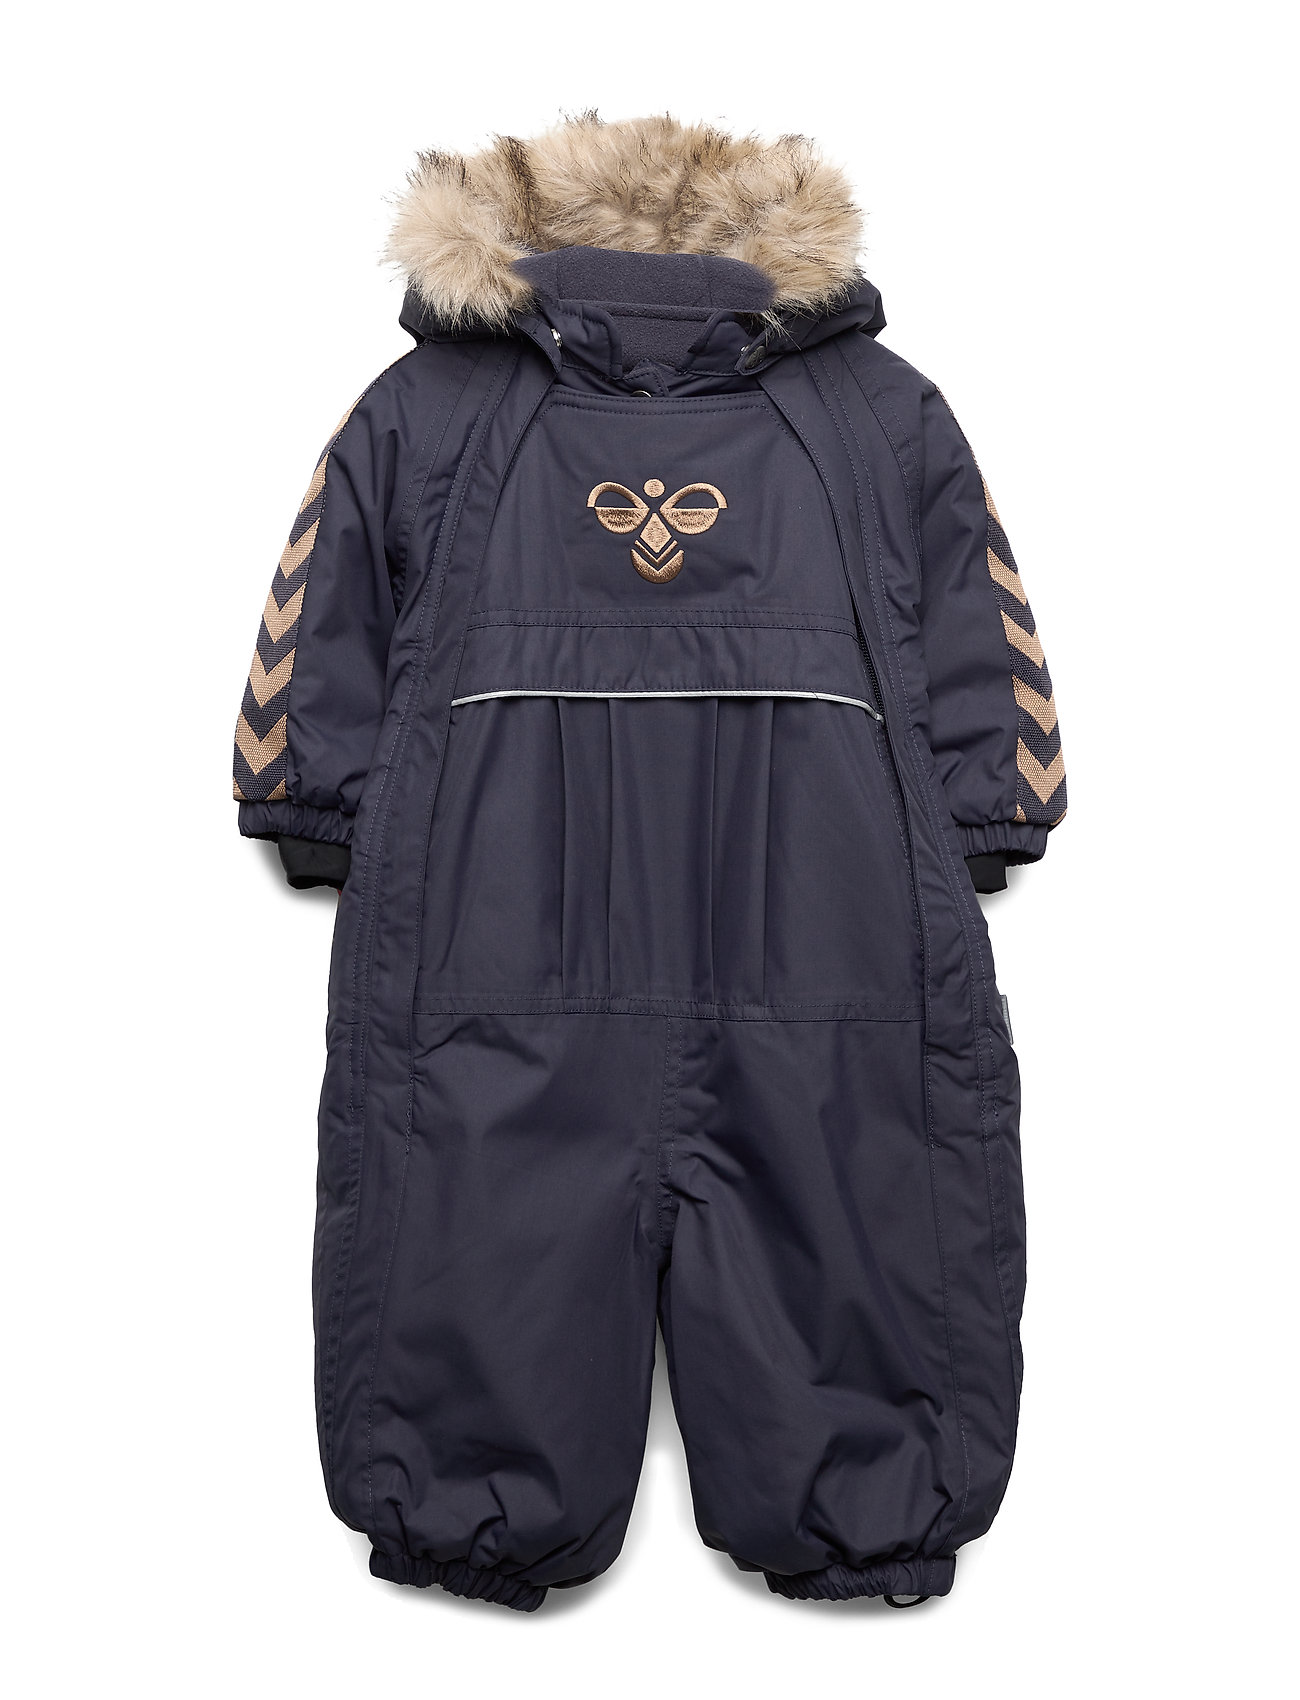 Hummel hmlMOON SNOWSUIT - GRAPHITE